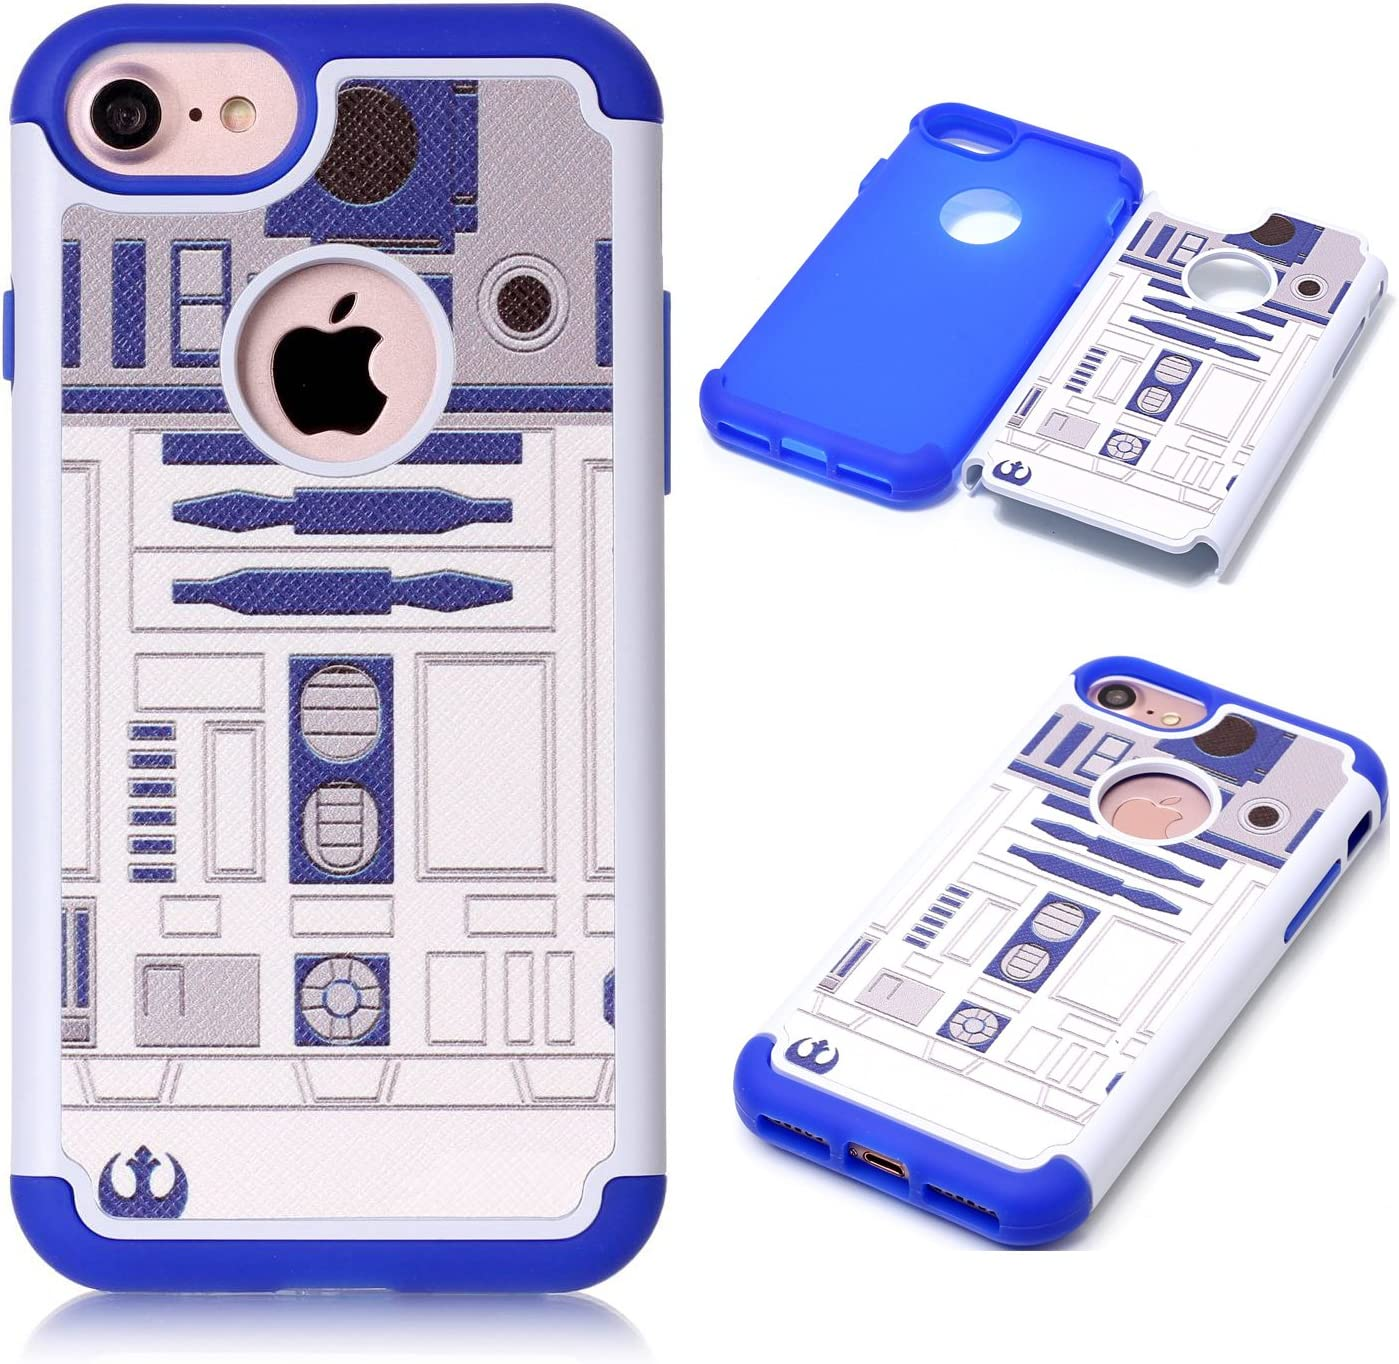 iPhone 8 Case,iPhone 8 Cover - R2D2 Astromech Droid Robot Pattern Shock-Absorption Hard PC and Inner Silicone Hybrid Dual Layer Armor Defender Protective Case Cover for Apple iPhone 8 (2017 Release)